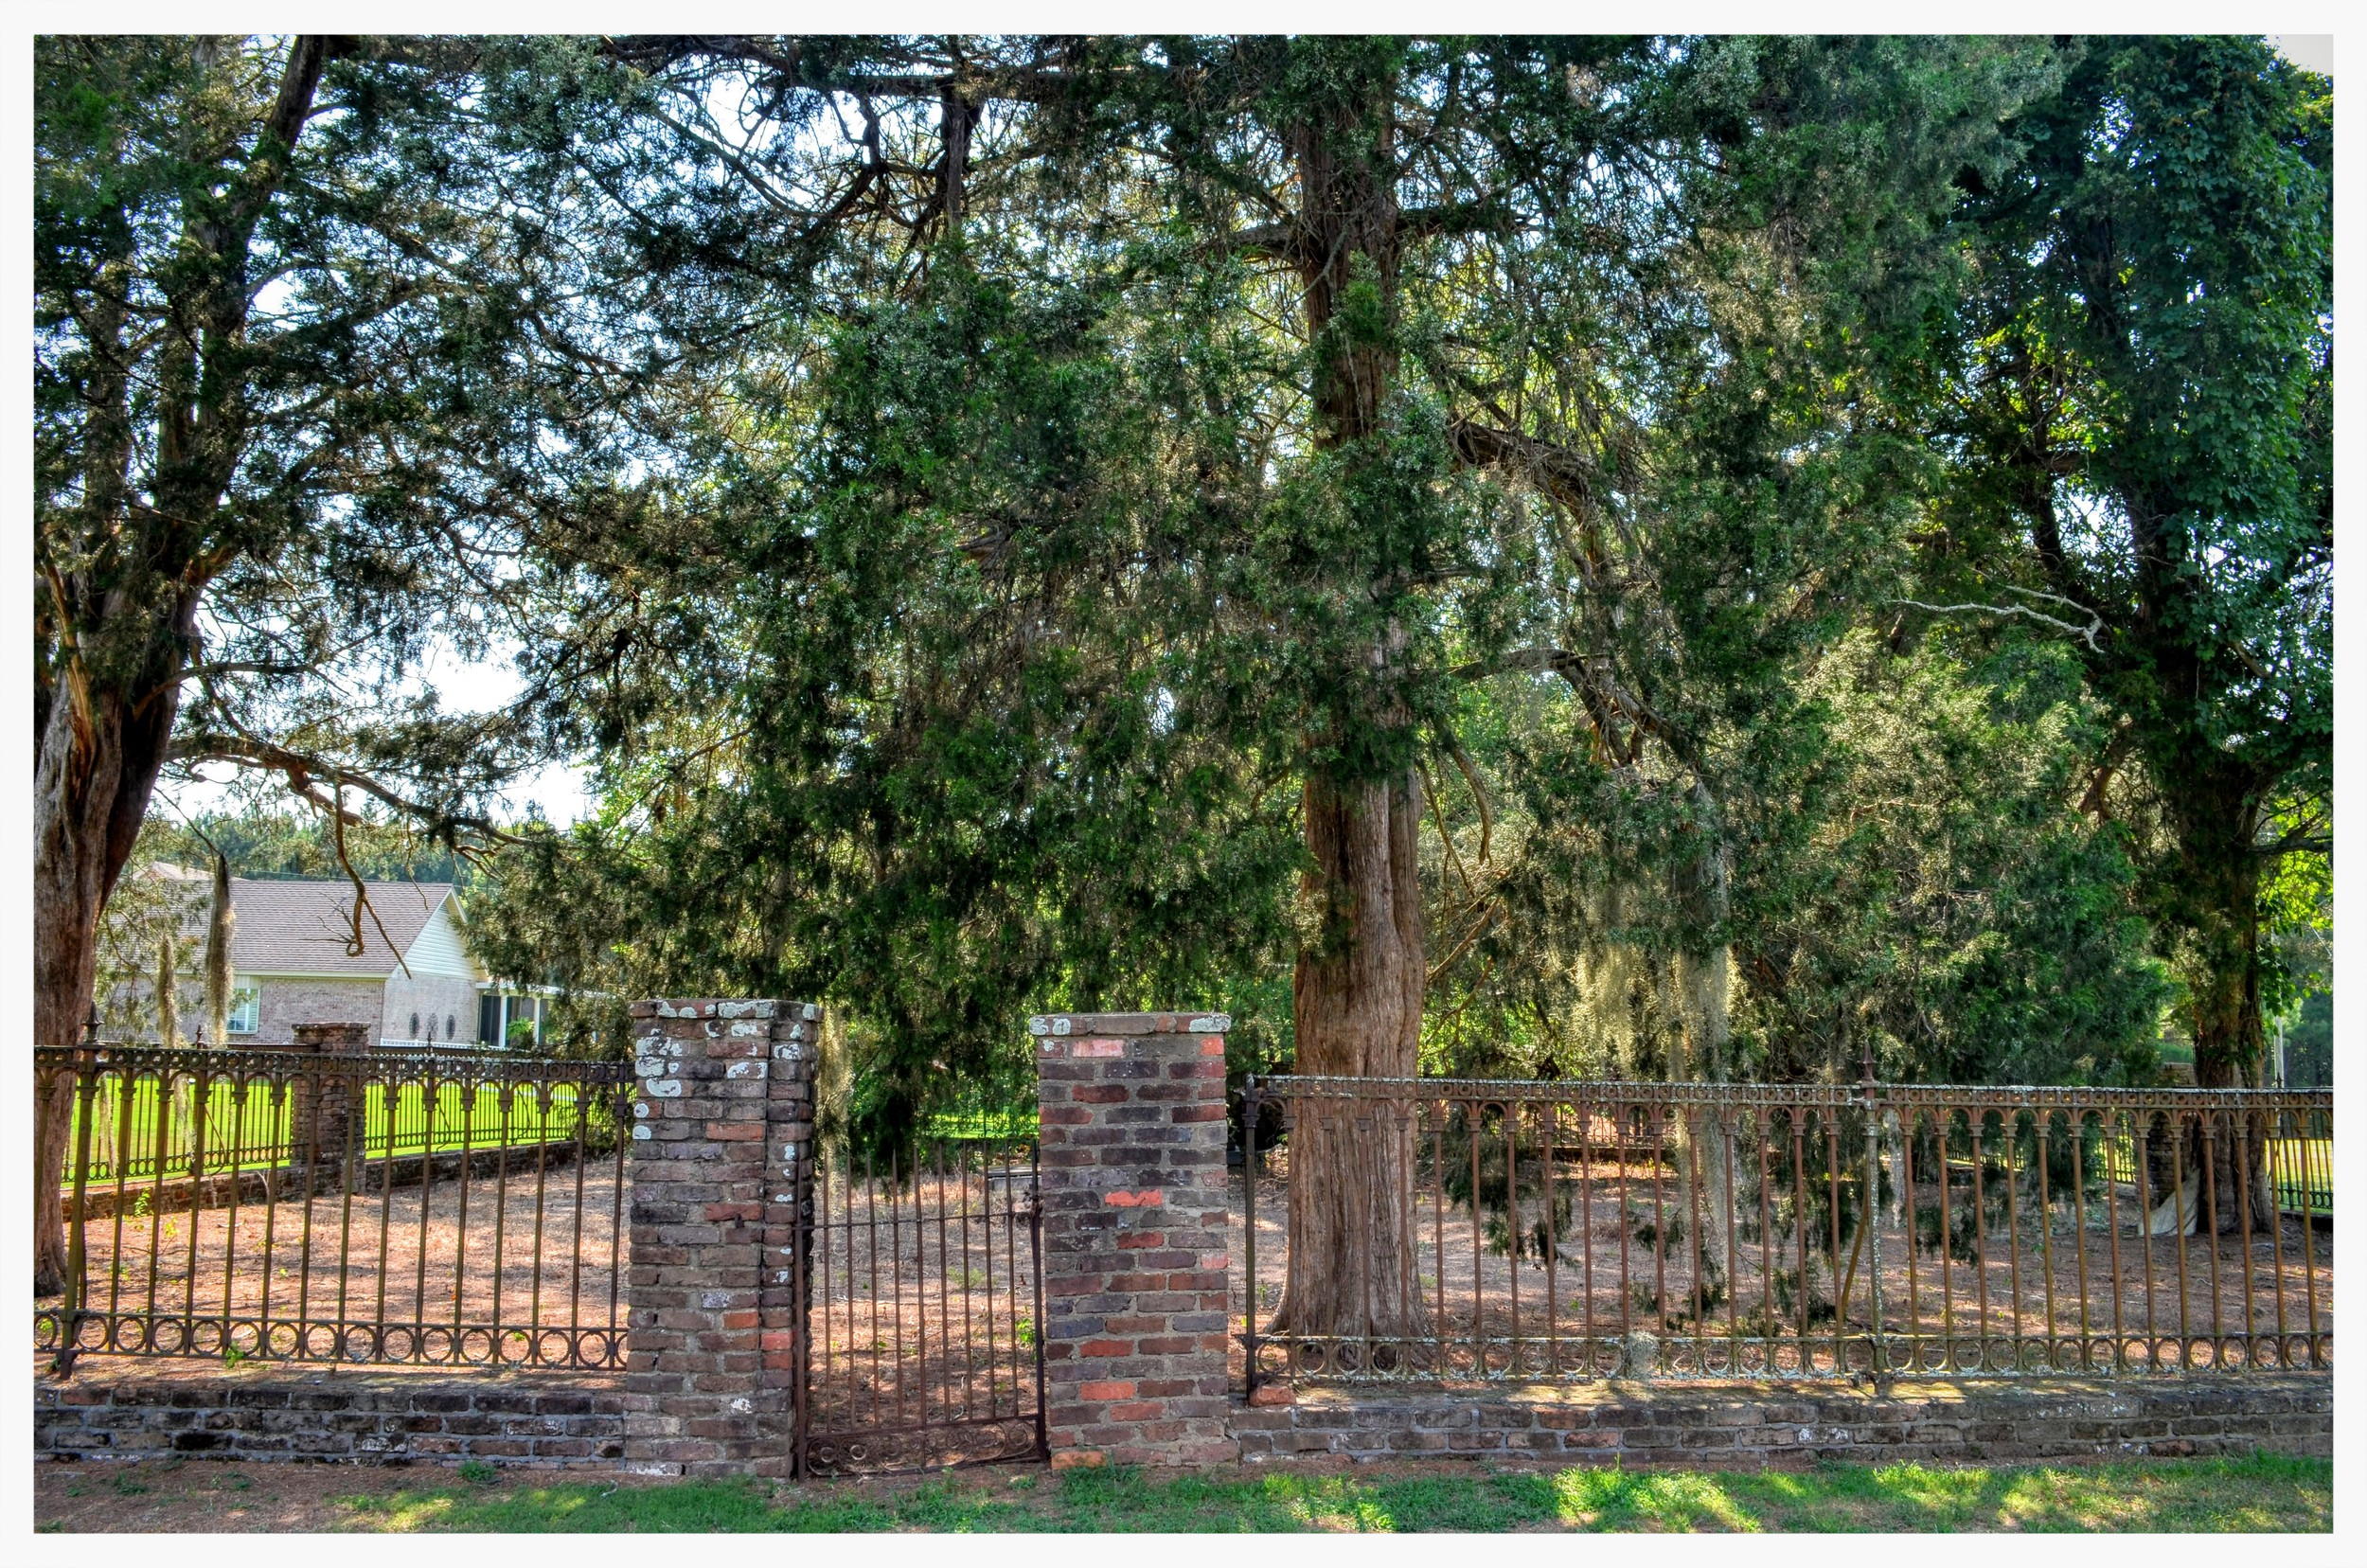 Old Augusta Cemetery gate, Montgomery, Montgomery County, Alabama